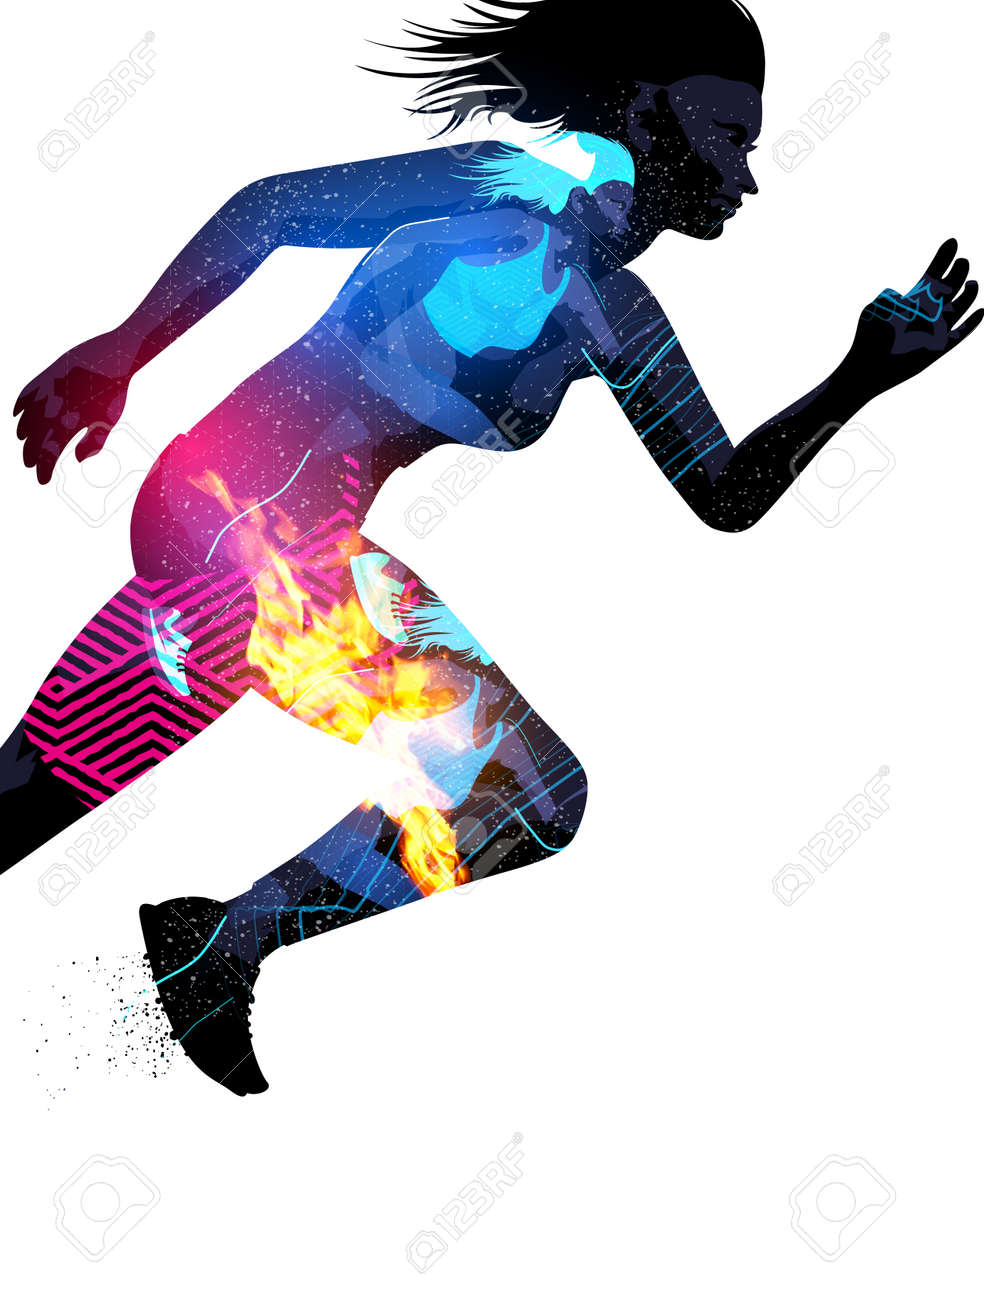 Double exposure effect illustration of a running sports woman with texture effects. - 60773933